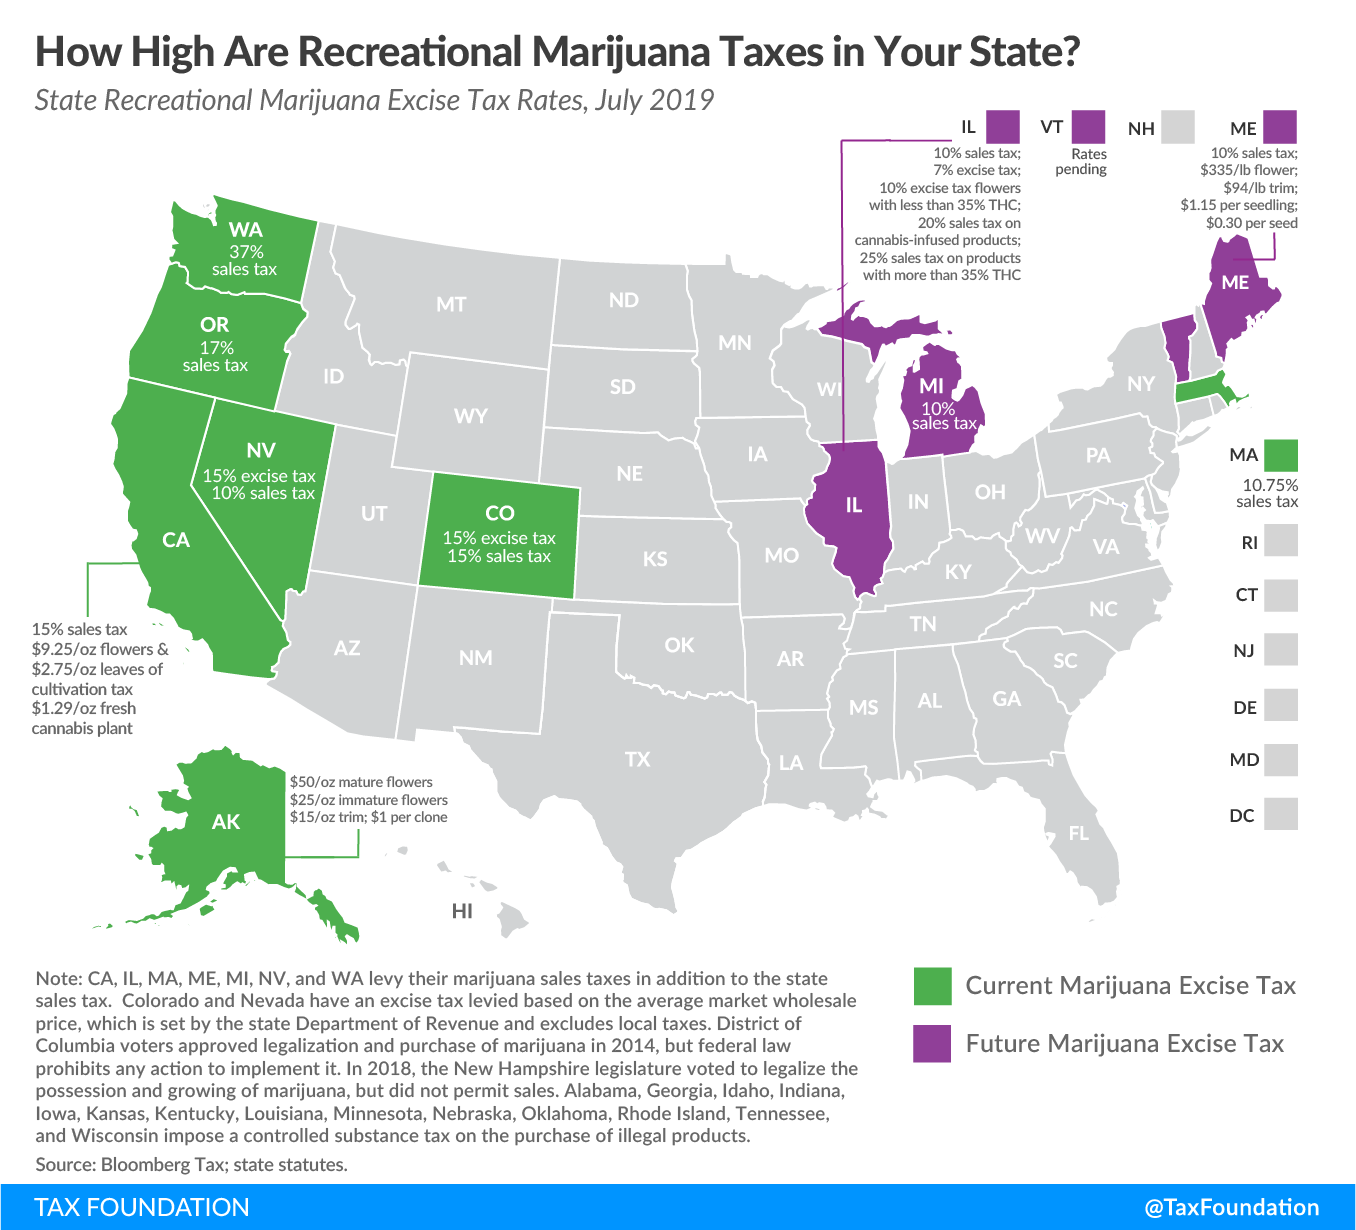 SAFE Bank Act, marijuana revenues, recreational marijuana revenue, cannabis industry, cannabis legalization, state recreational marijuana excise tax rates 2019